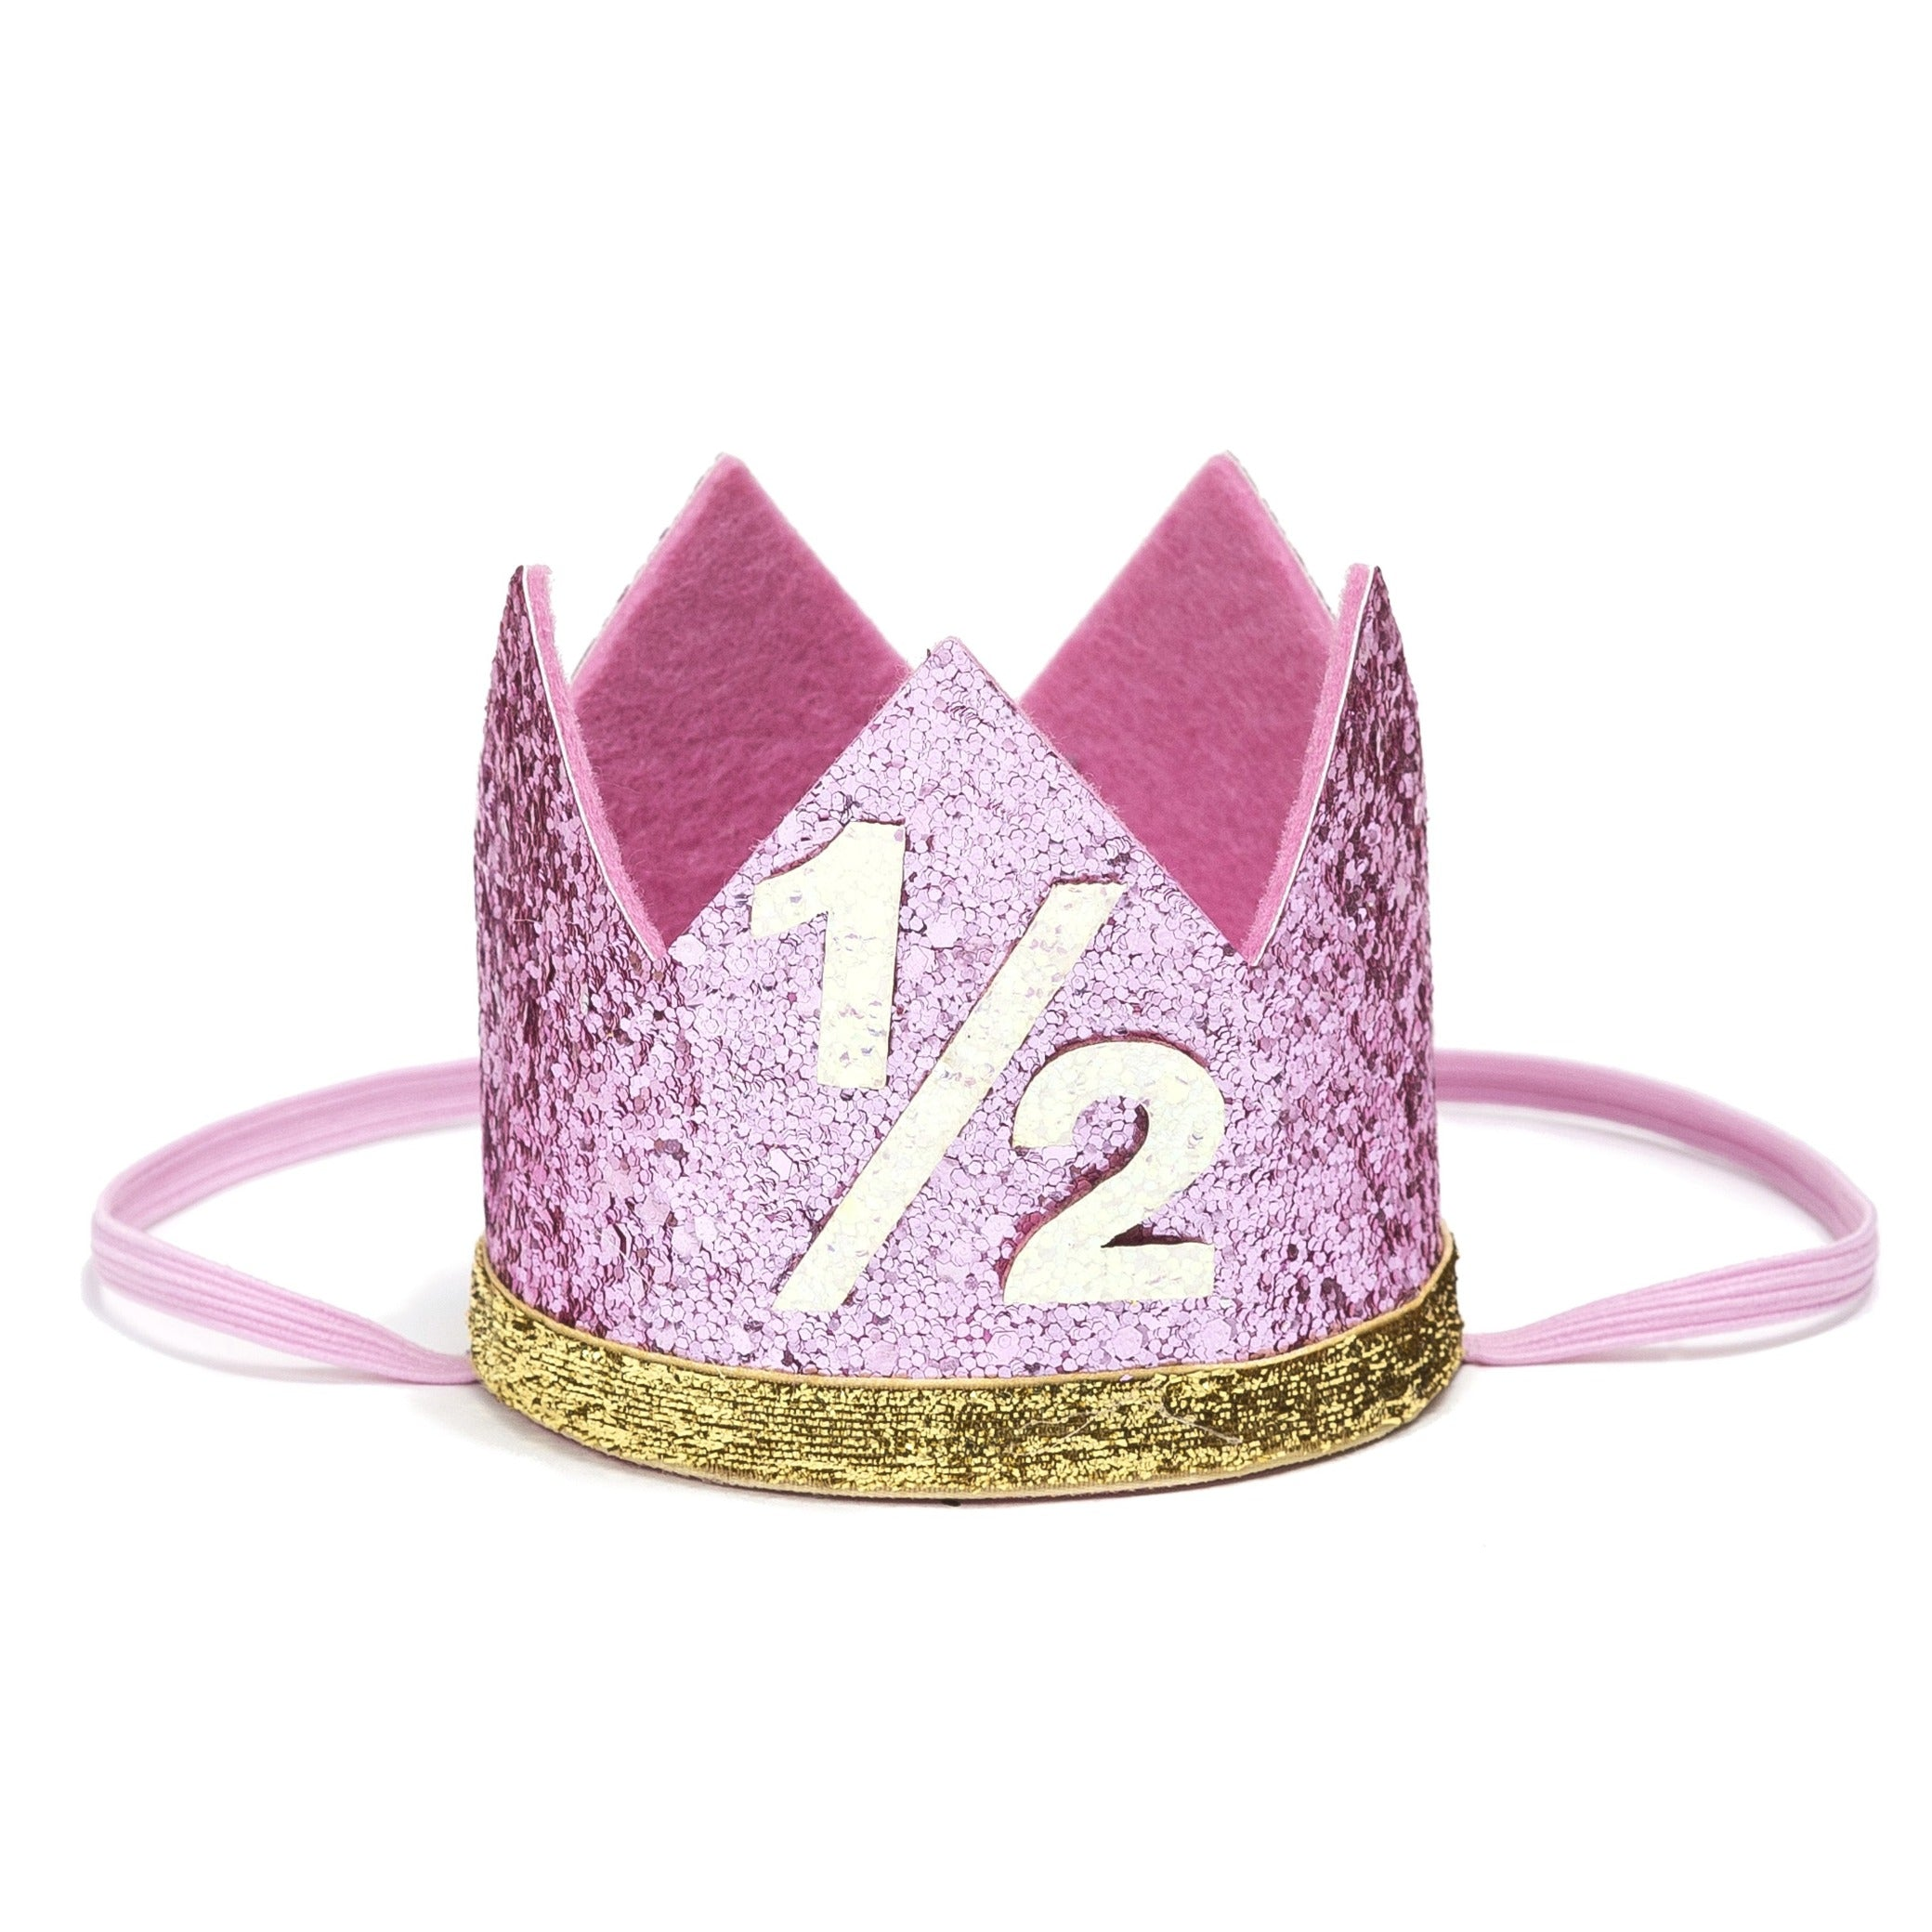 Sweet Wink 1/2 pink sparkle birthday crown